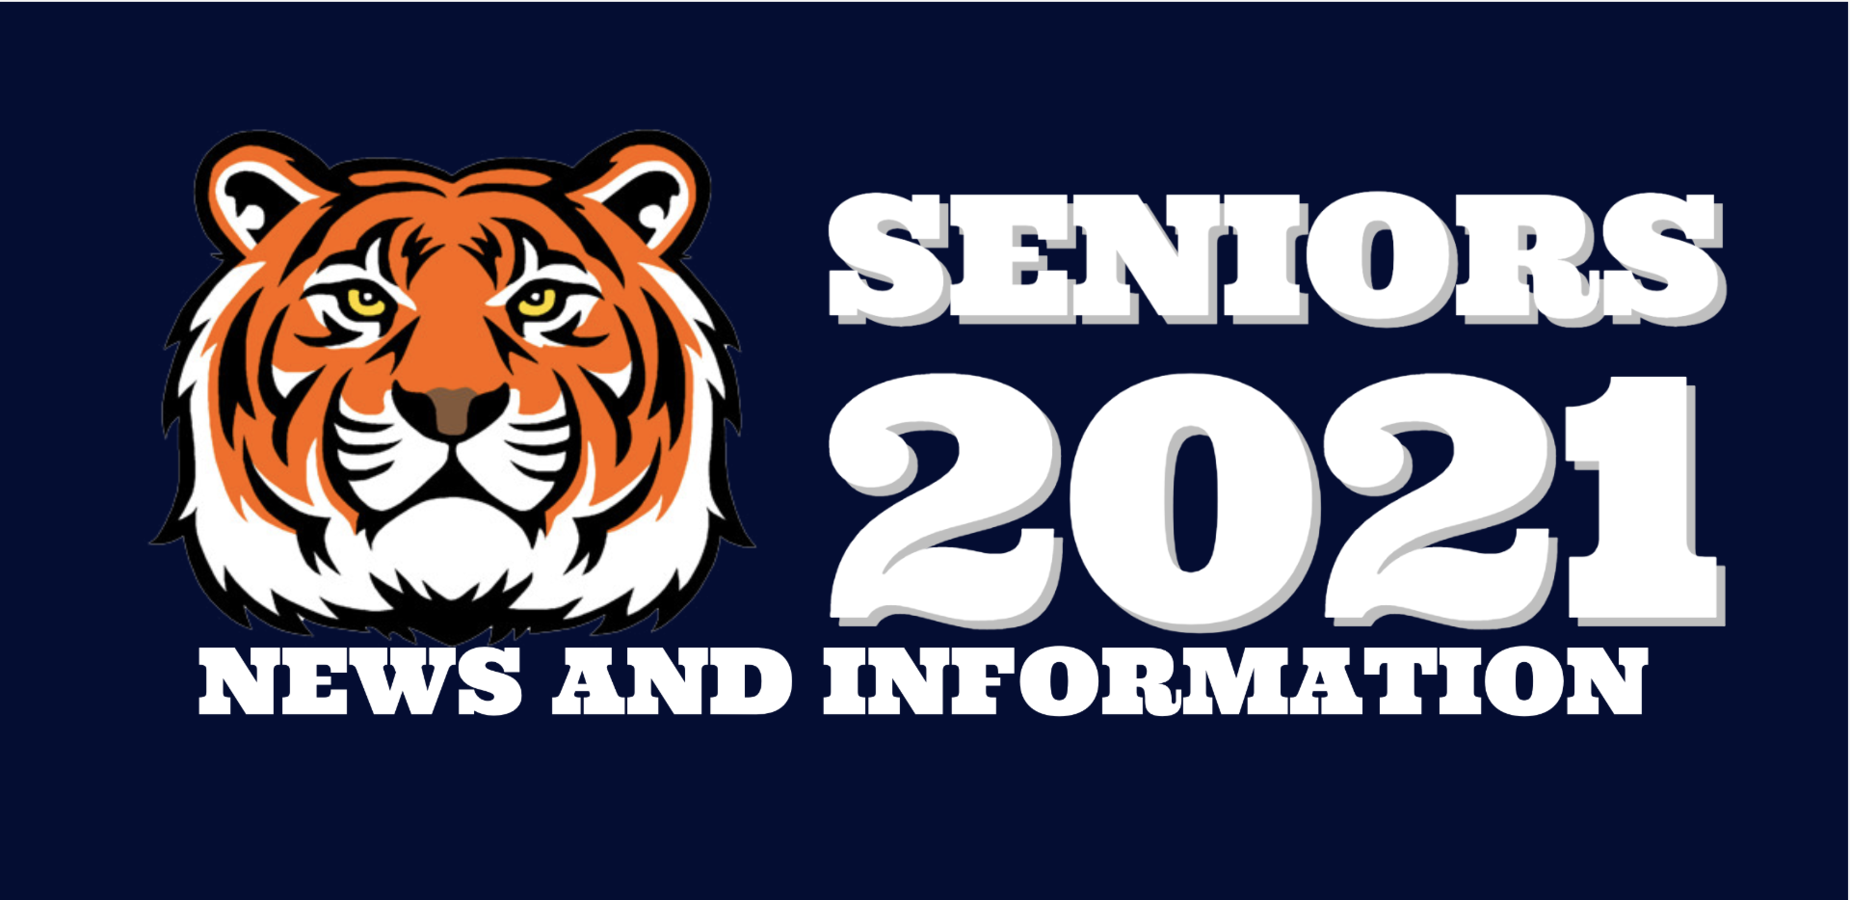 Tiger logo with Seniors 2020 News and Information